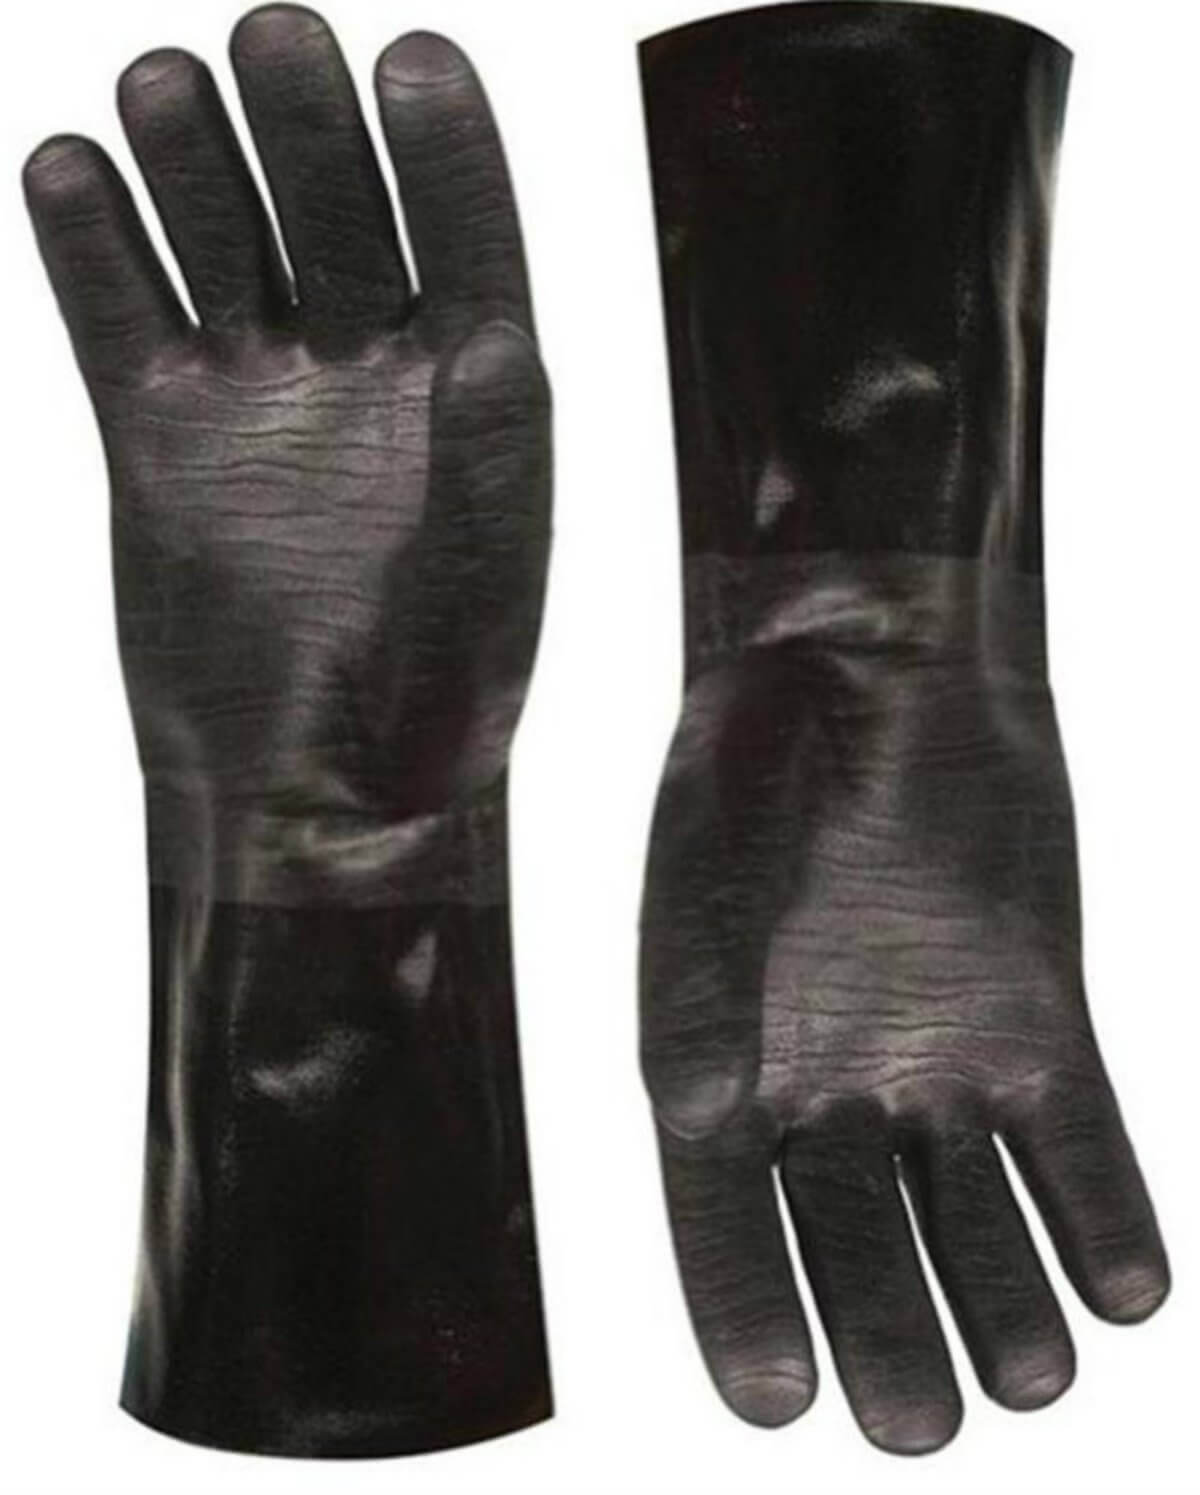 Artisan Griller Redefining Outdoor Cooking Barbeque Gloves